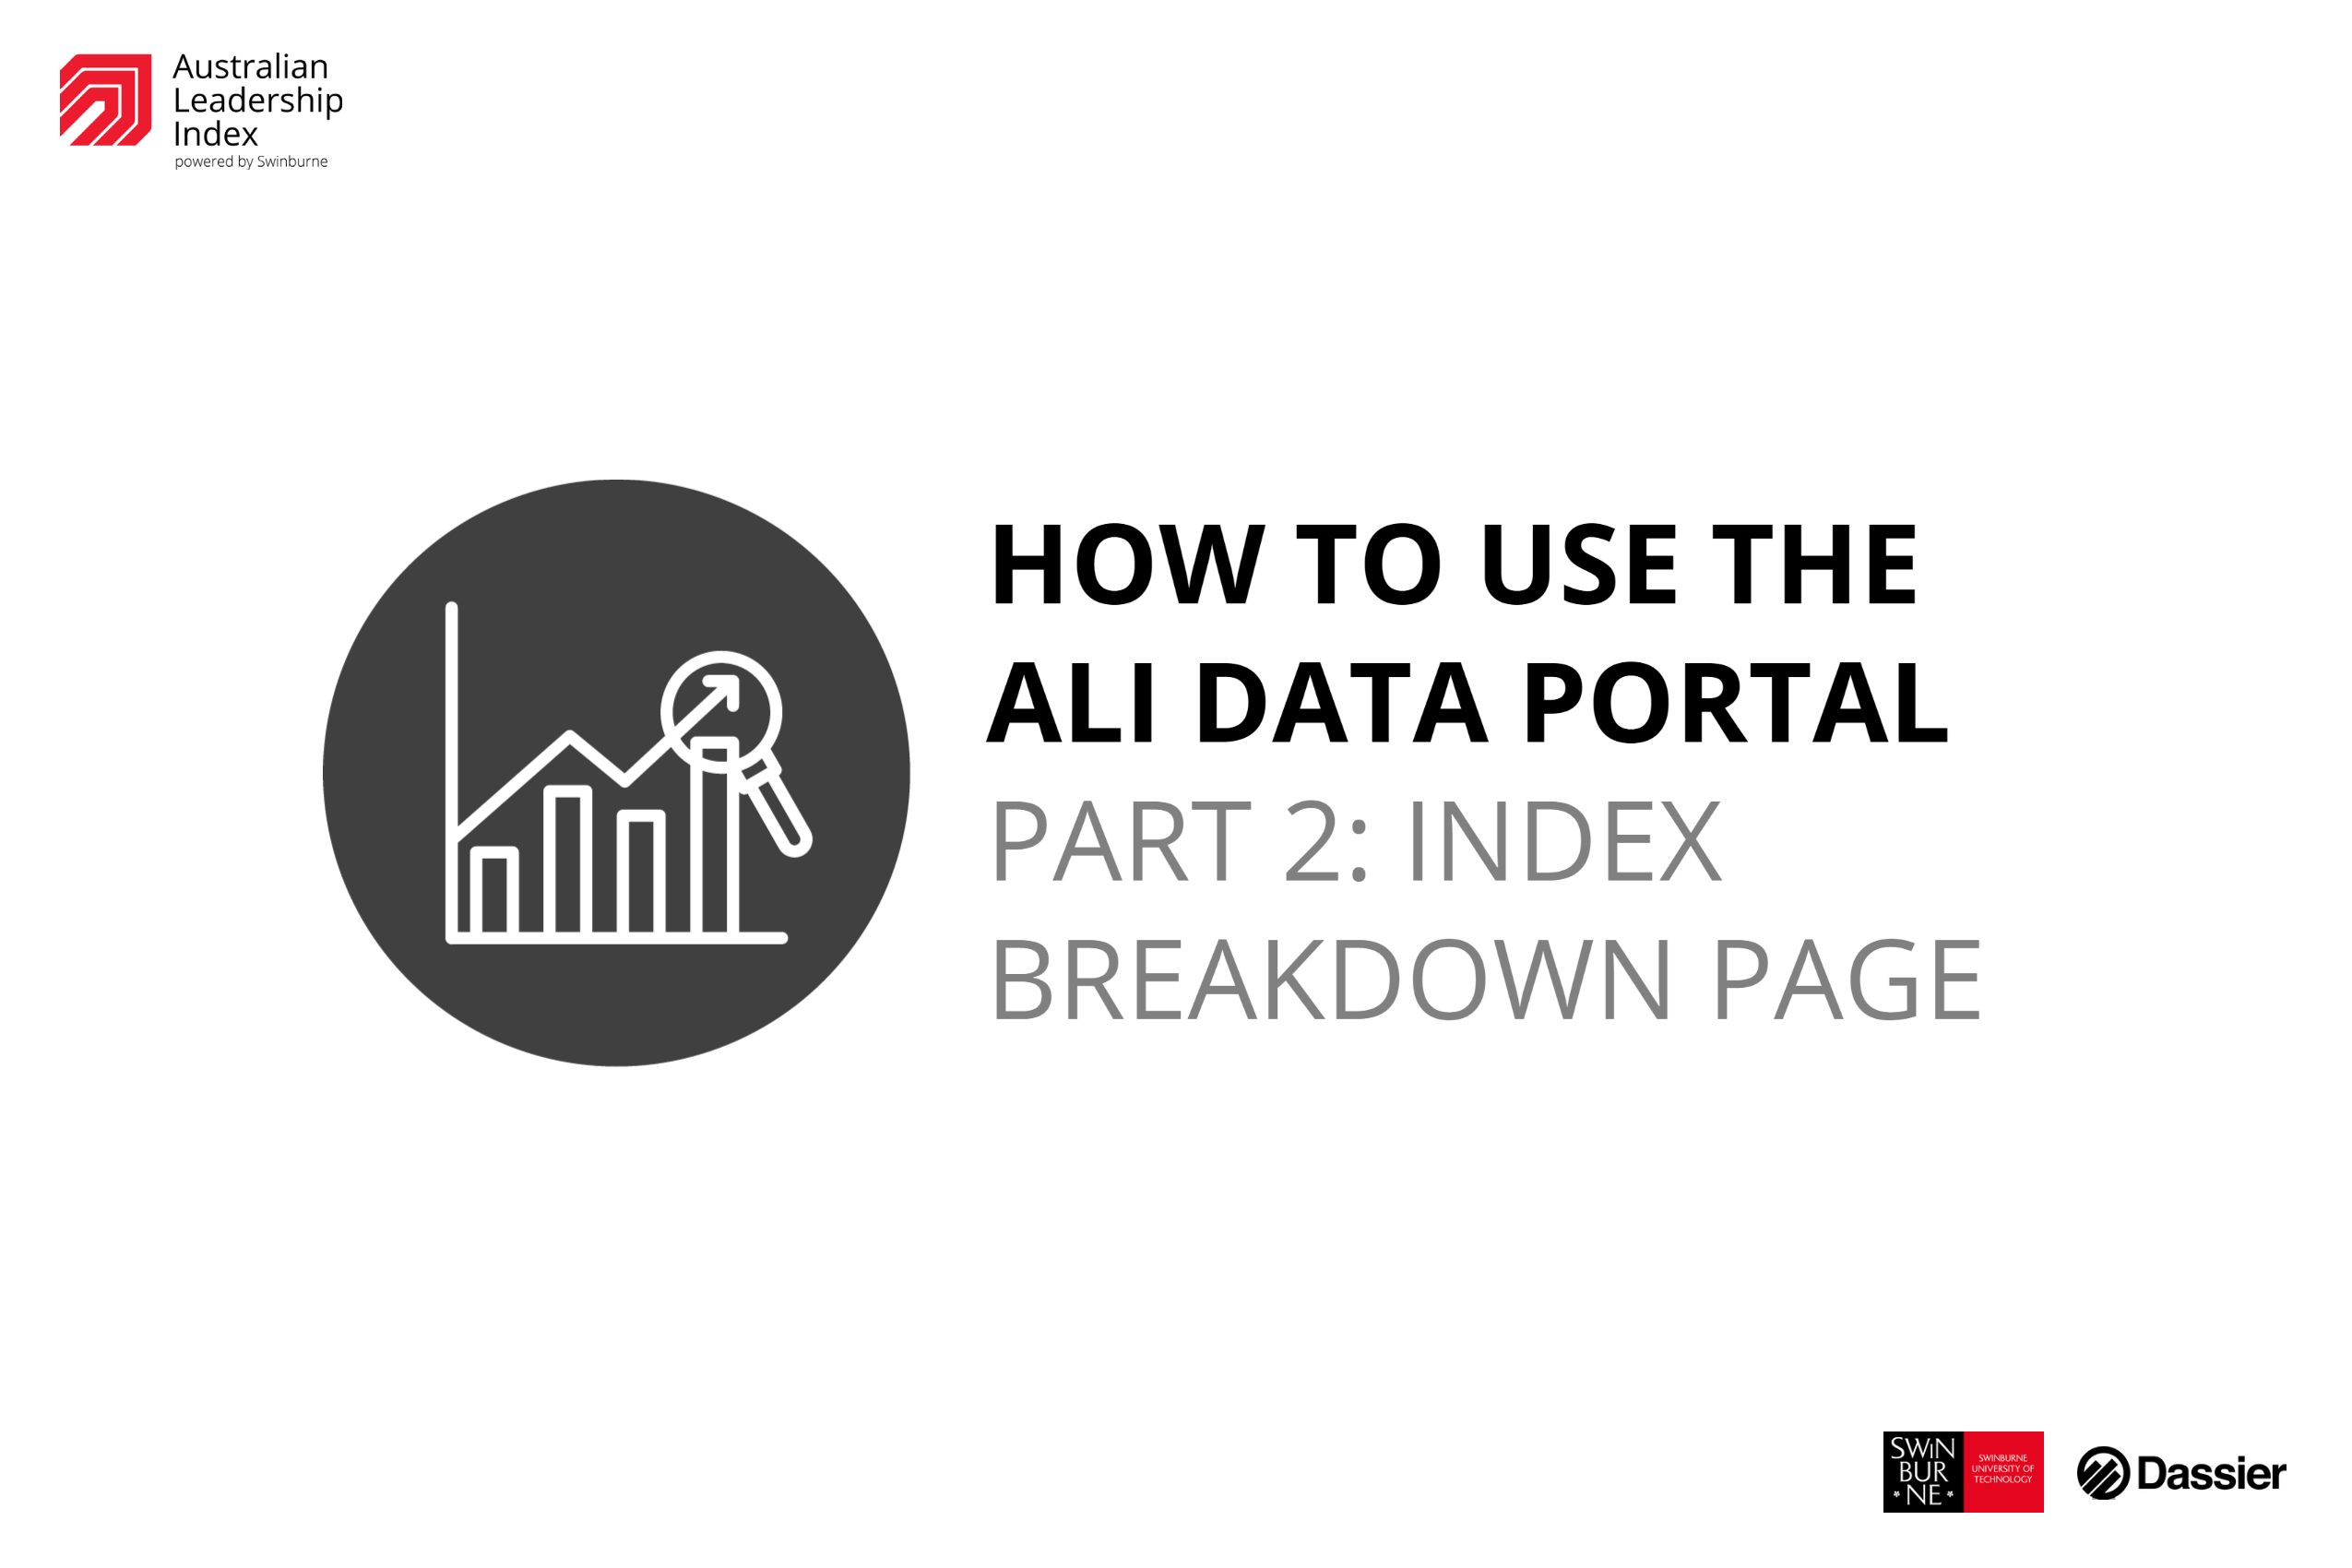 How-to-Use-the-ALI-Data-Portal-Part-2-Index-Breakdown-Page